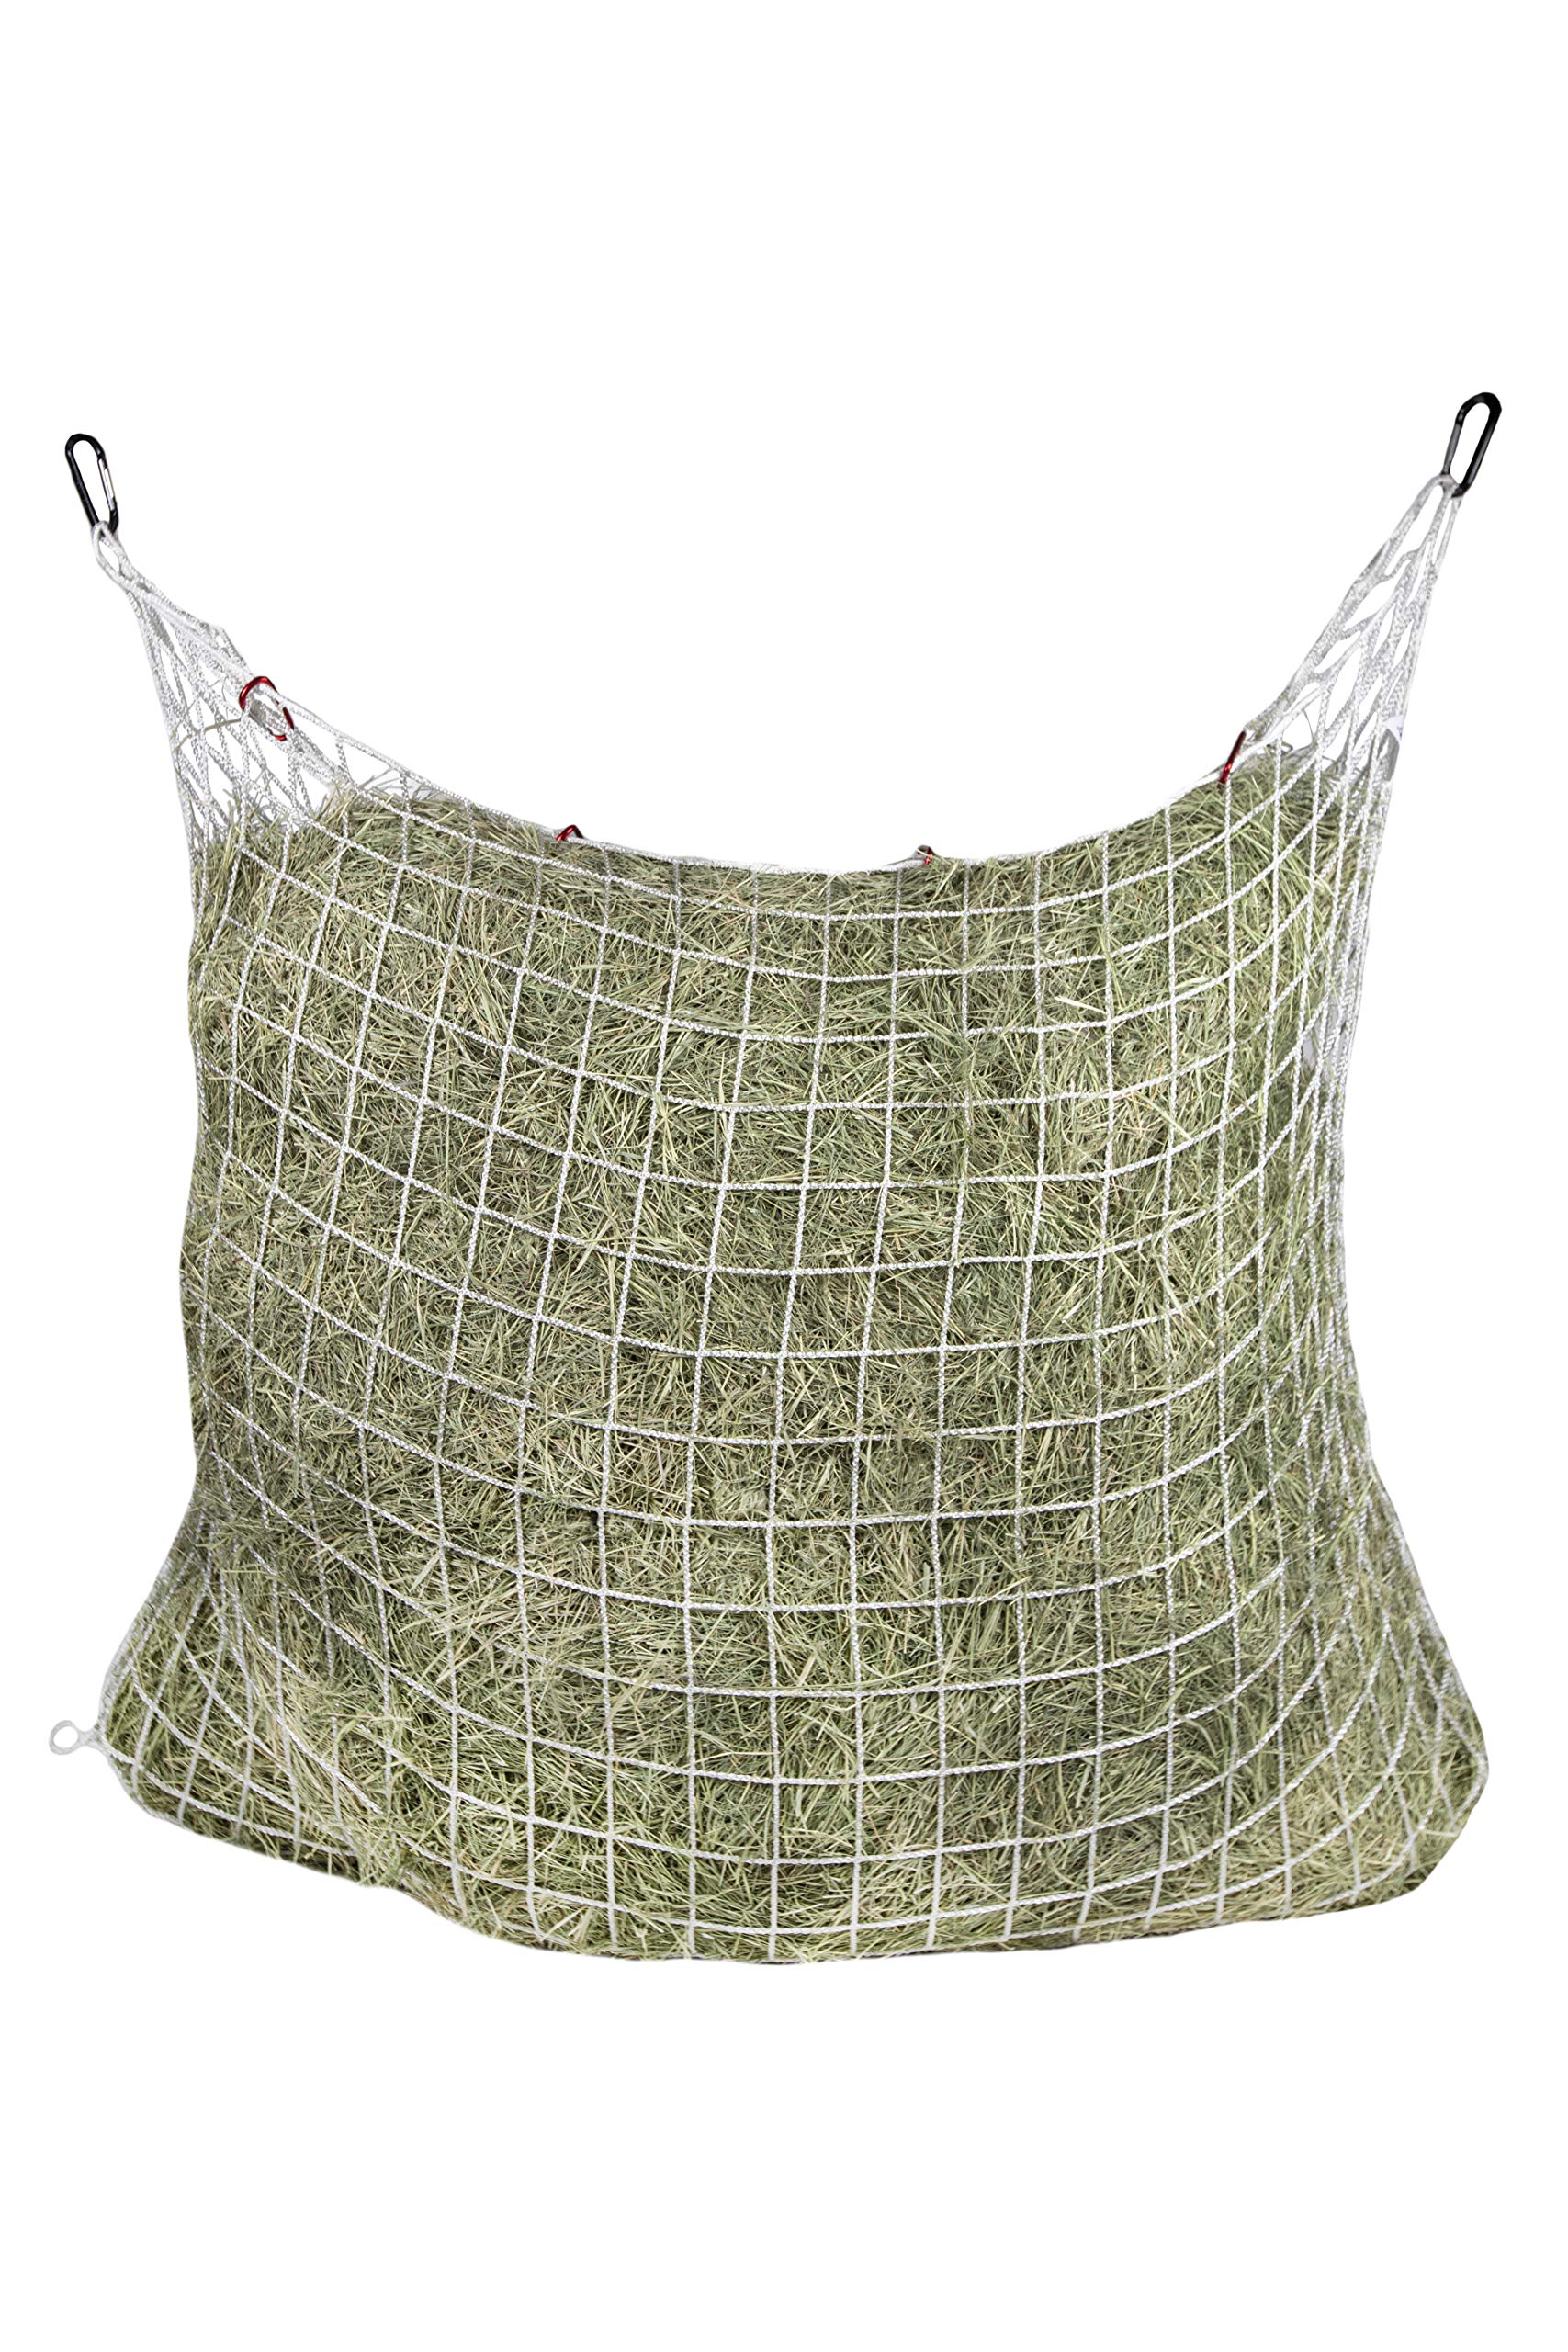 Freedom Feeder Mesh Net Two Day Slow Horse Feeder - Designed to Hold 50 lbs/6 Flakes/2 String Bale of Hay and Feed Horse for Two Days - Reduces Horse Feeding Anxiety and Behavioral Issues by Freedom Feeder FF